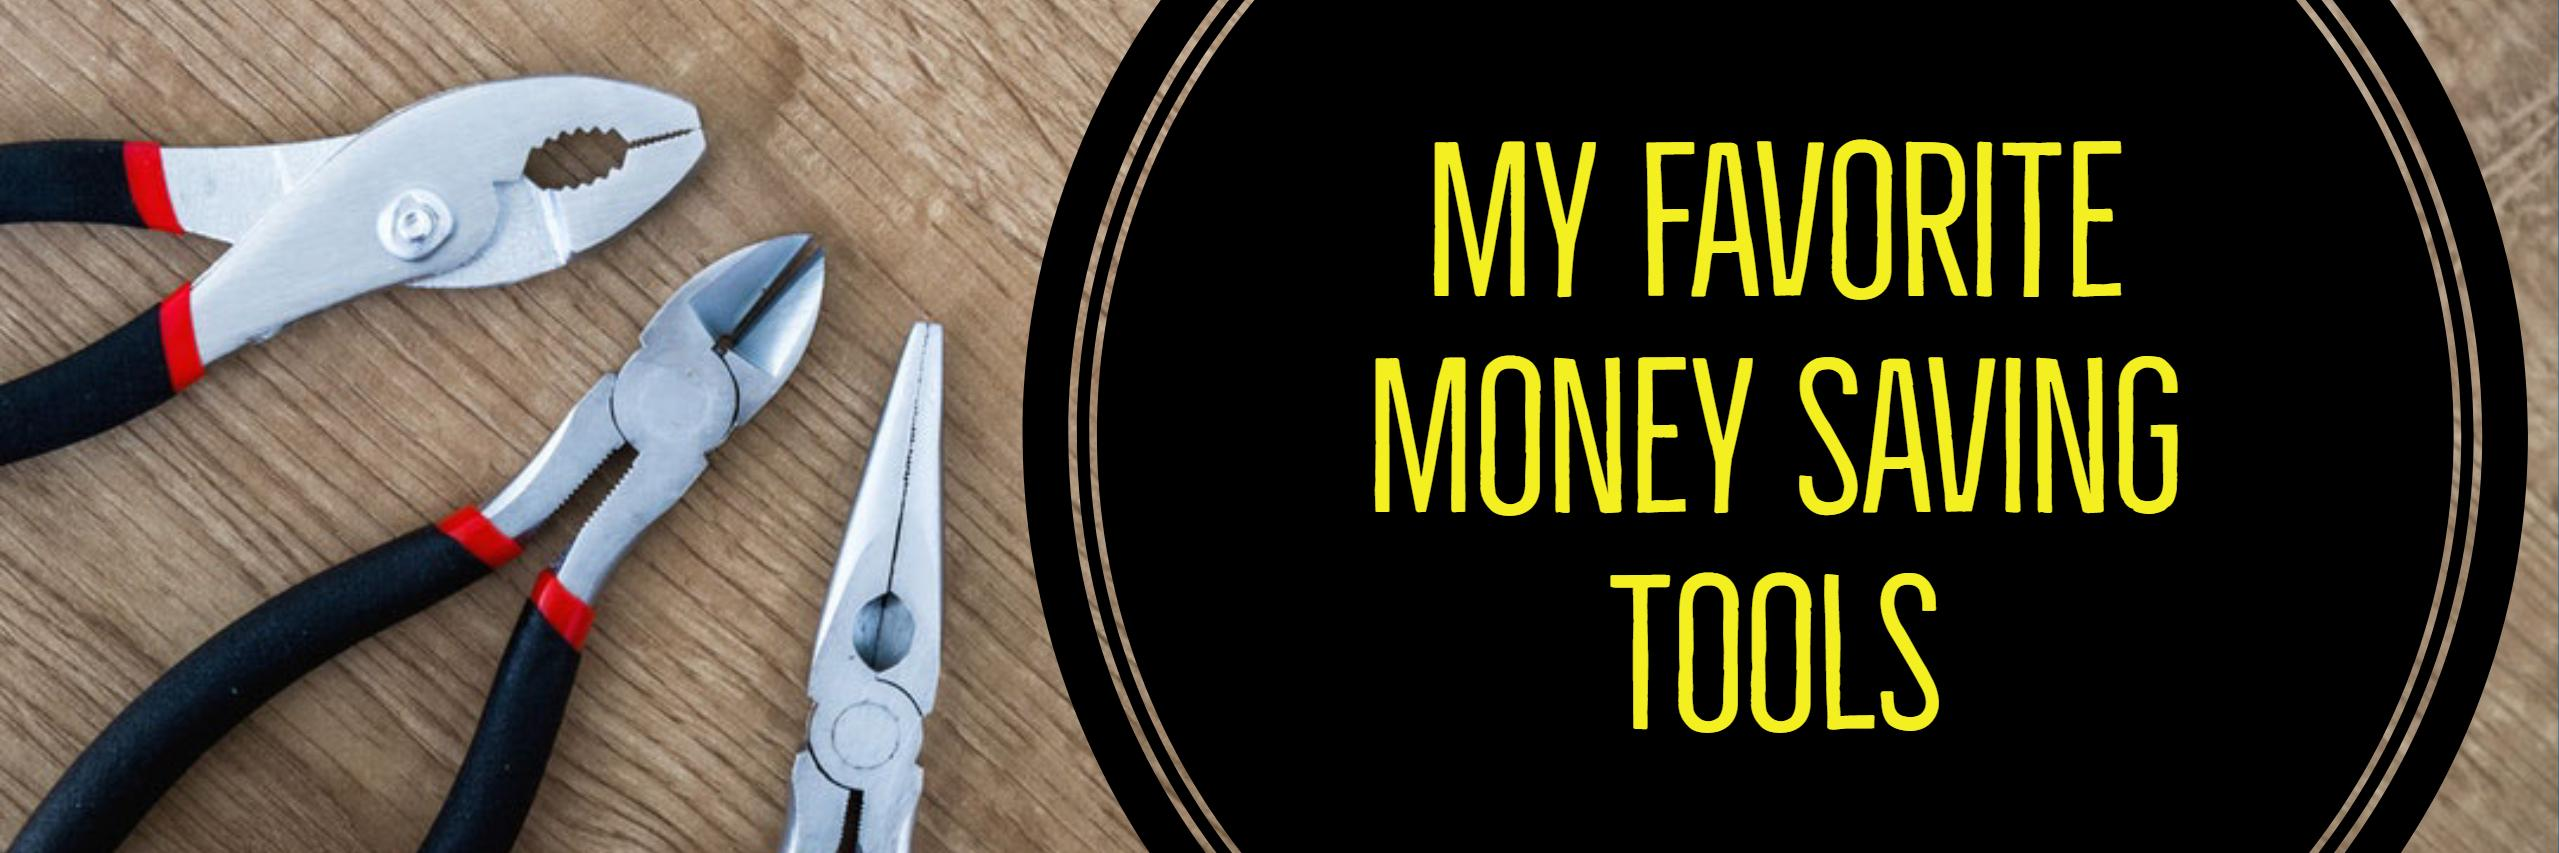 My Favorite Money Saving Tools  Thumbnail